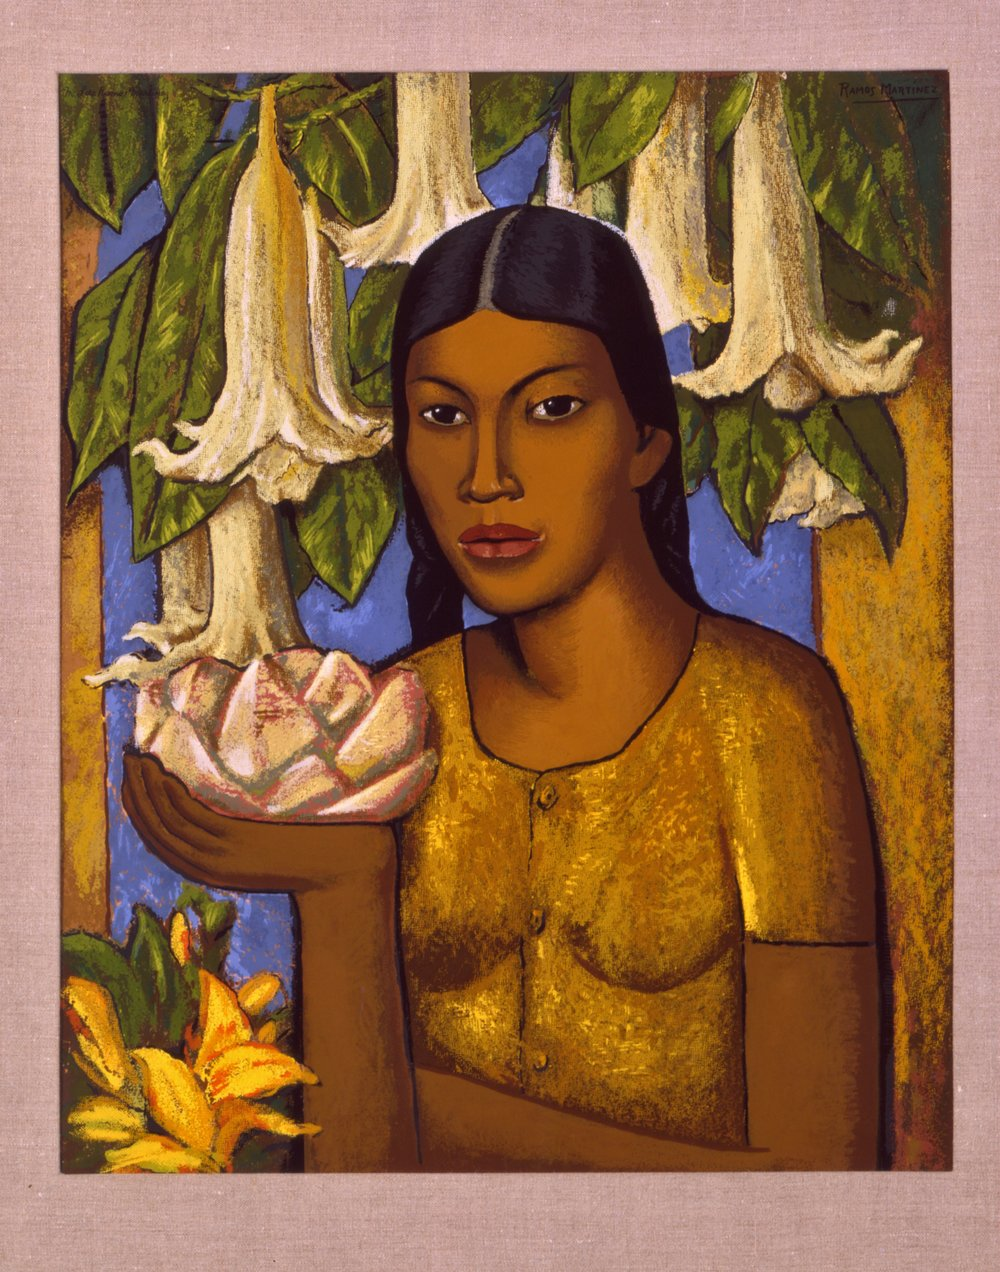 La India de los Floripondios / Indian Girl with Trumpet Flowers  ca. 1932 oil on canvas / óleo sobre tela 30 x 24 inches; 76.2 x 61 centímetros Private collection